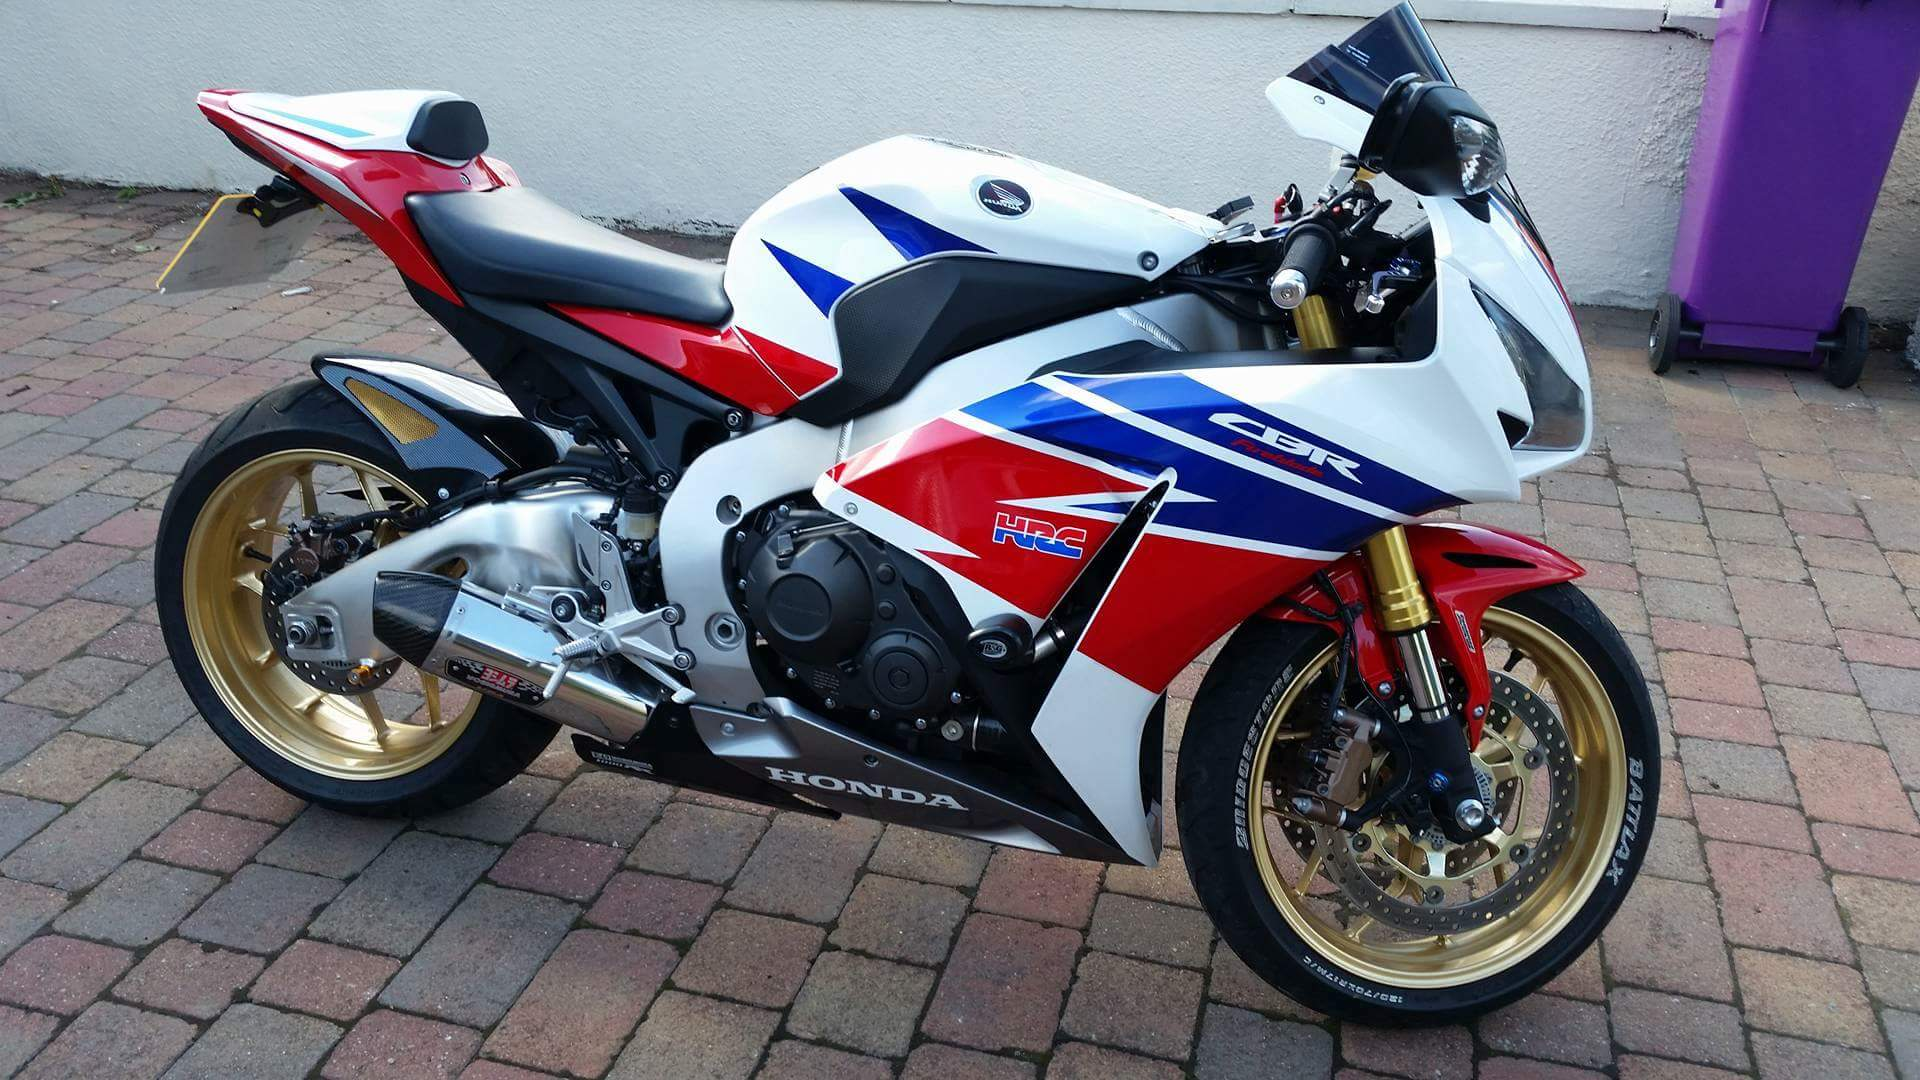 This gold-wheeled Honda Fireblade was among two motorbikes stolen from the house in Carnoustie